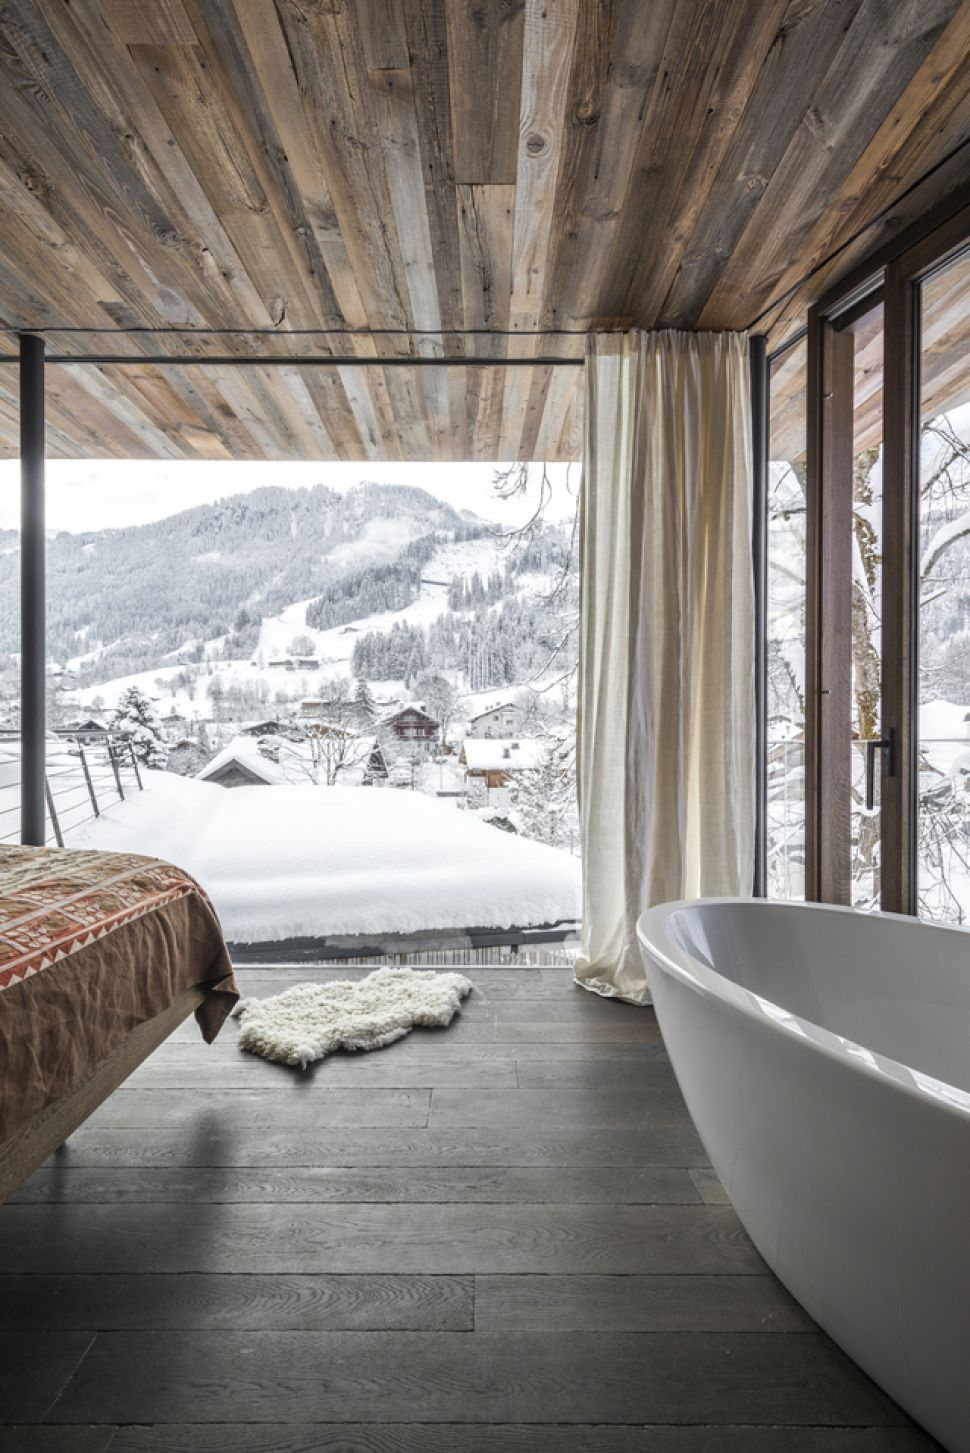 We visit a winter wonderhome in austria a traditional tyrolean ski chalet expanded into an adjoining modern extension